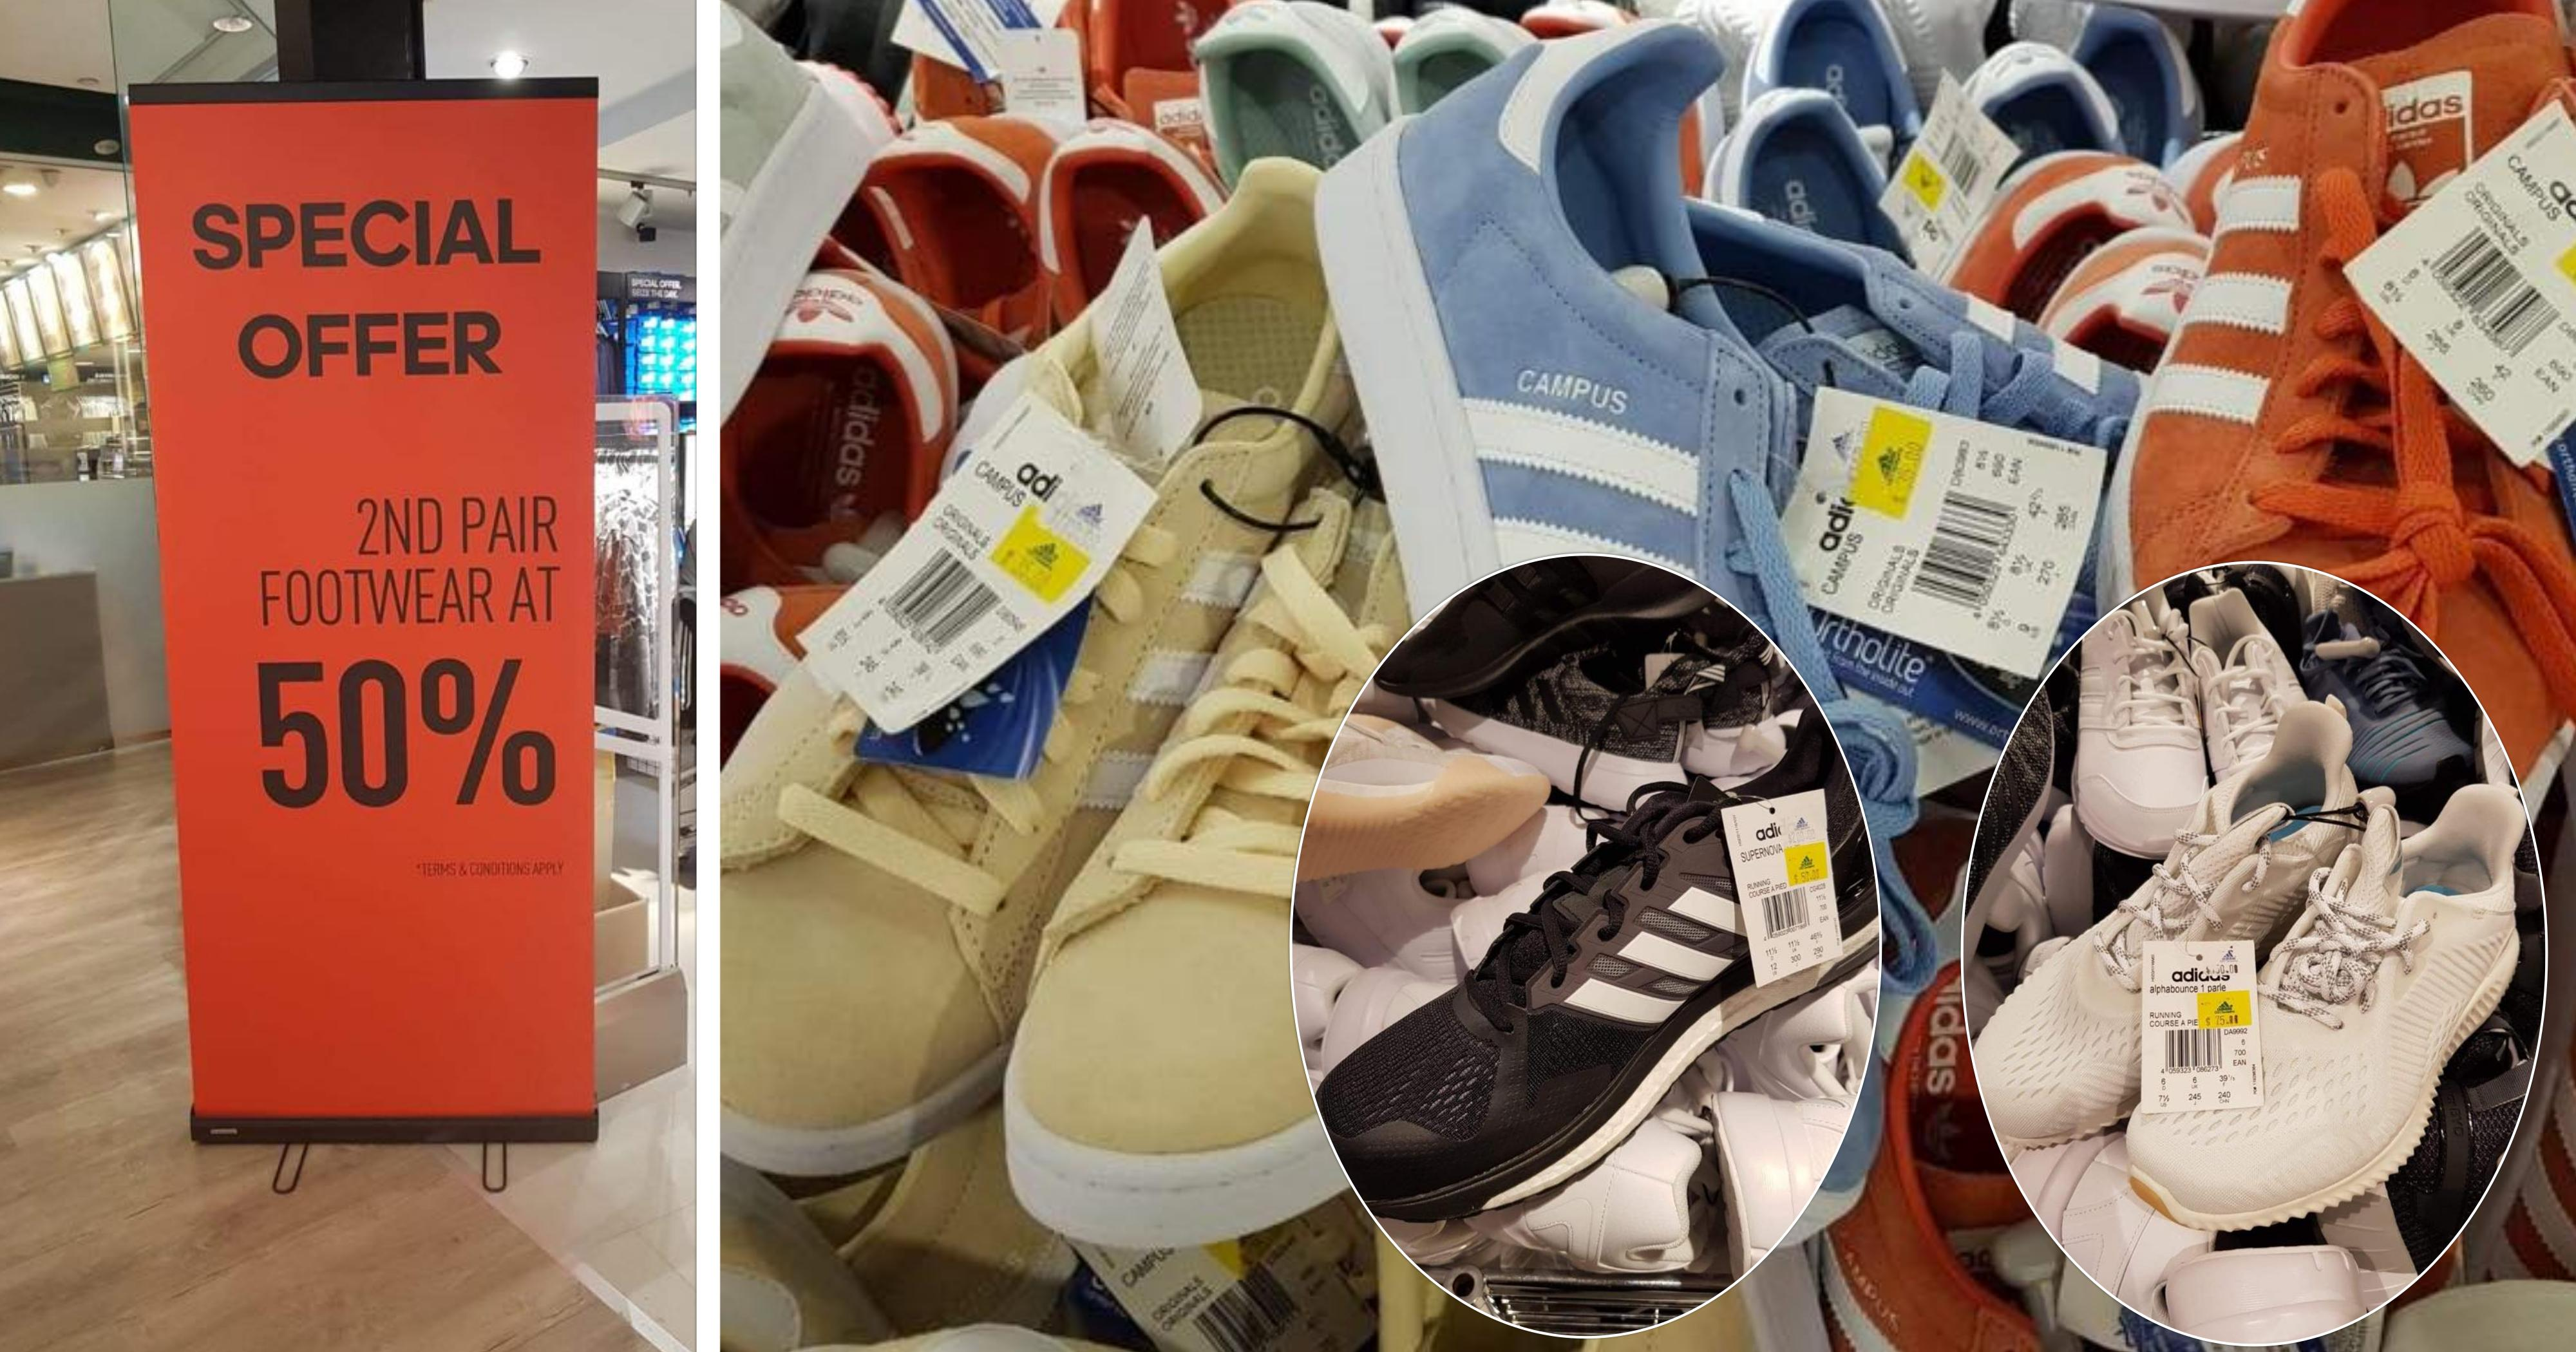 Adidas shoes going for S$35 - S$75 at